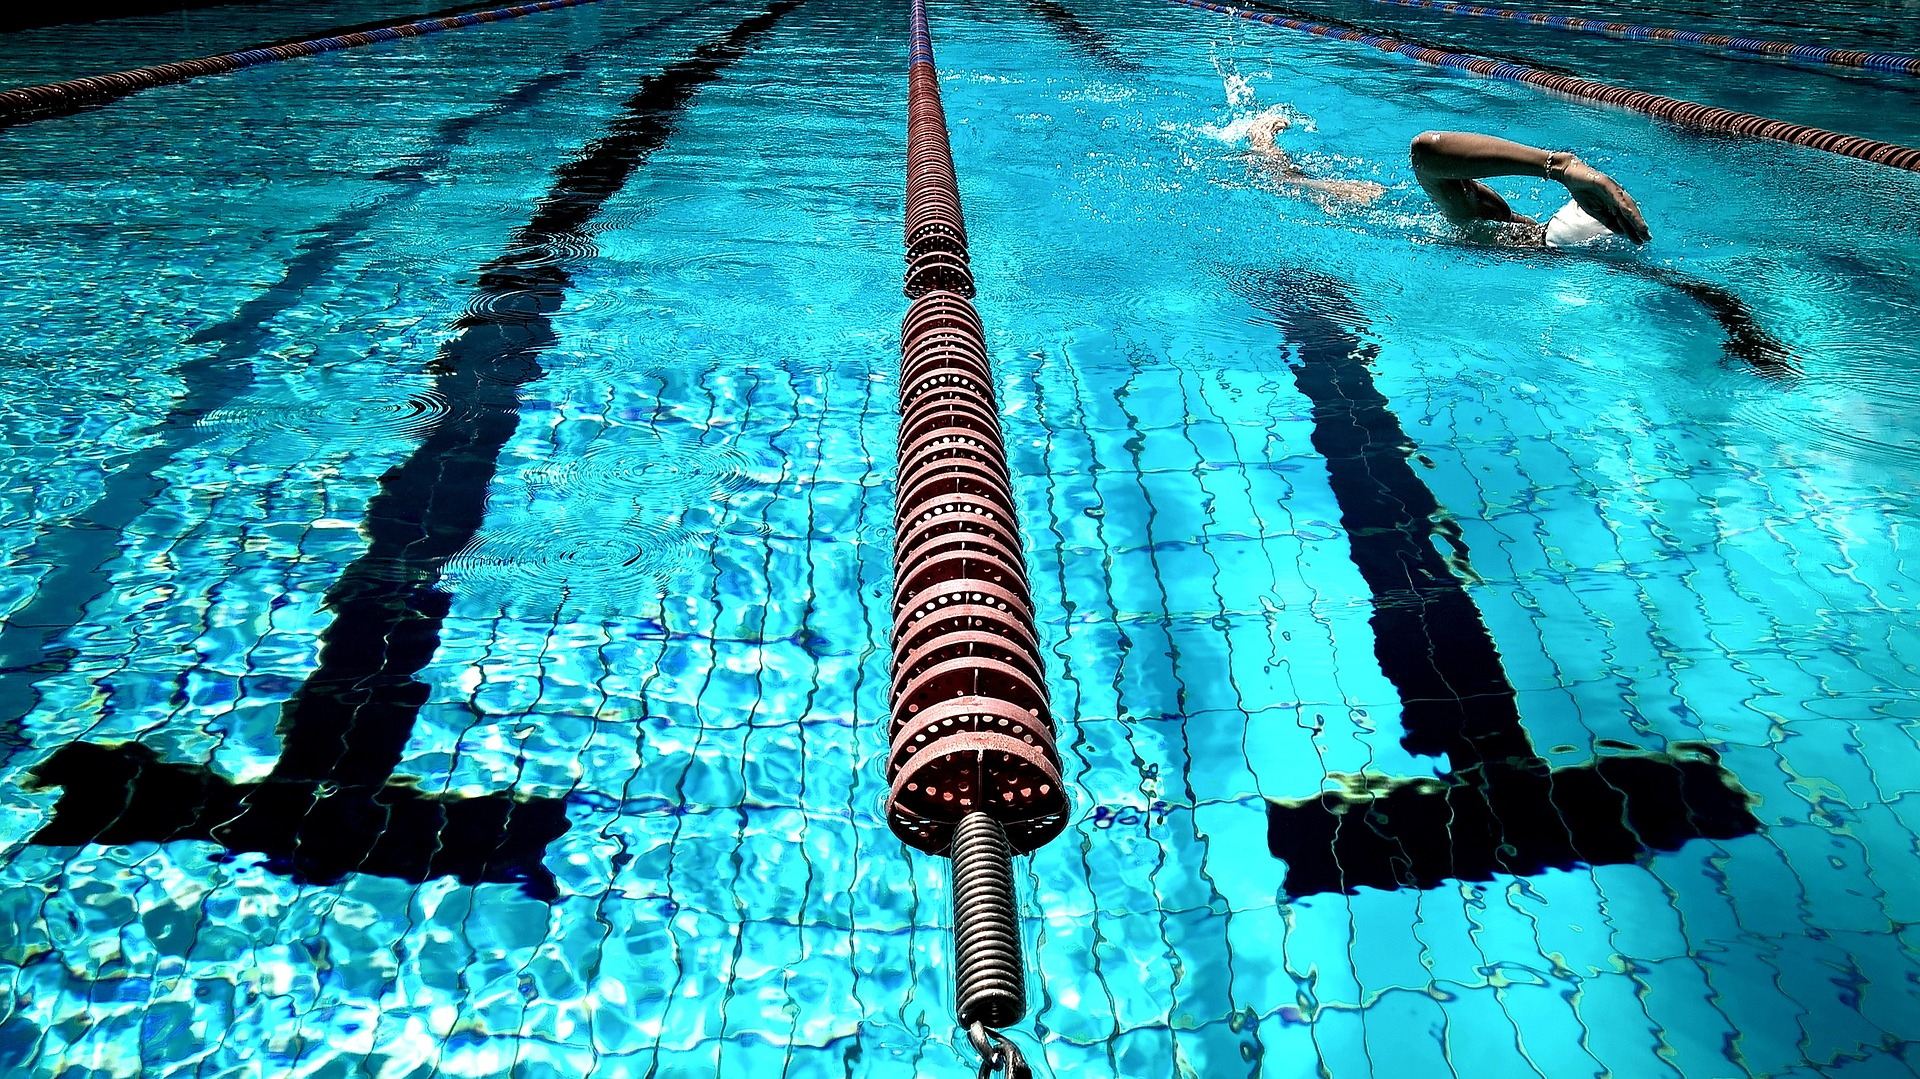 swimming-Image by StockSnap from Pixabay